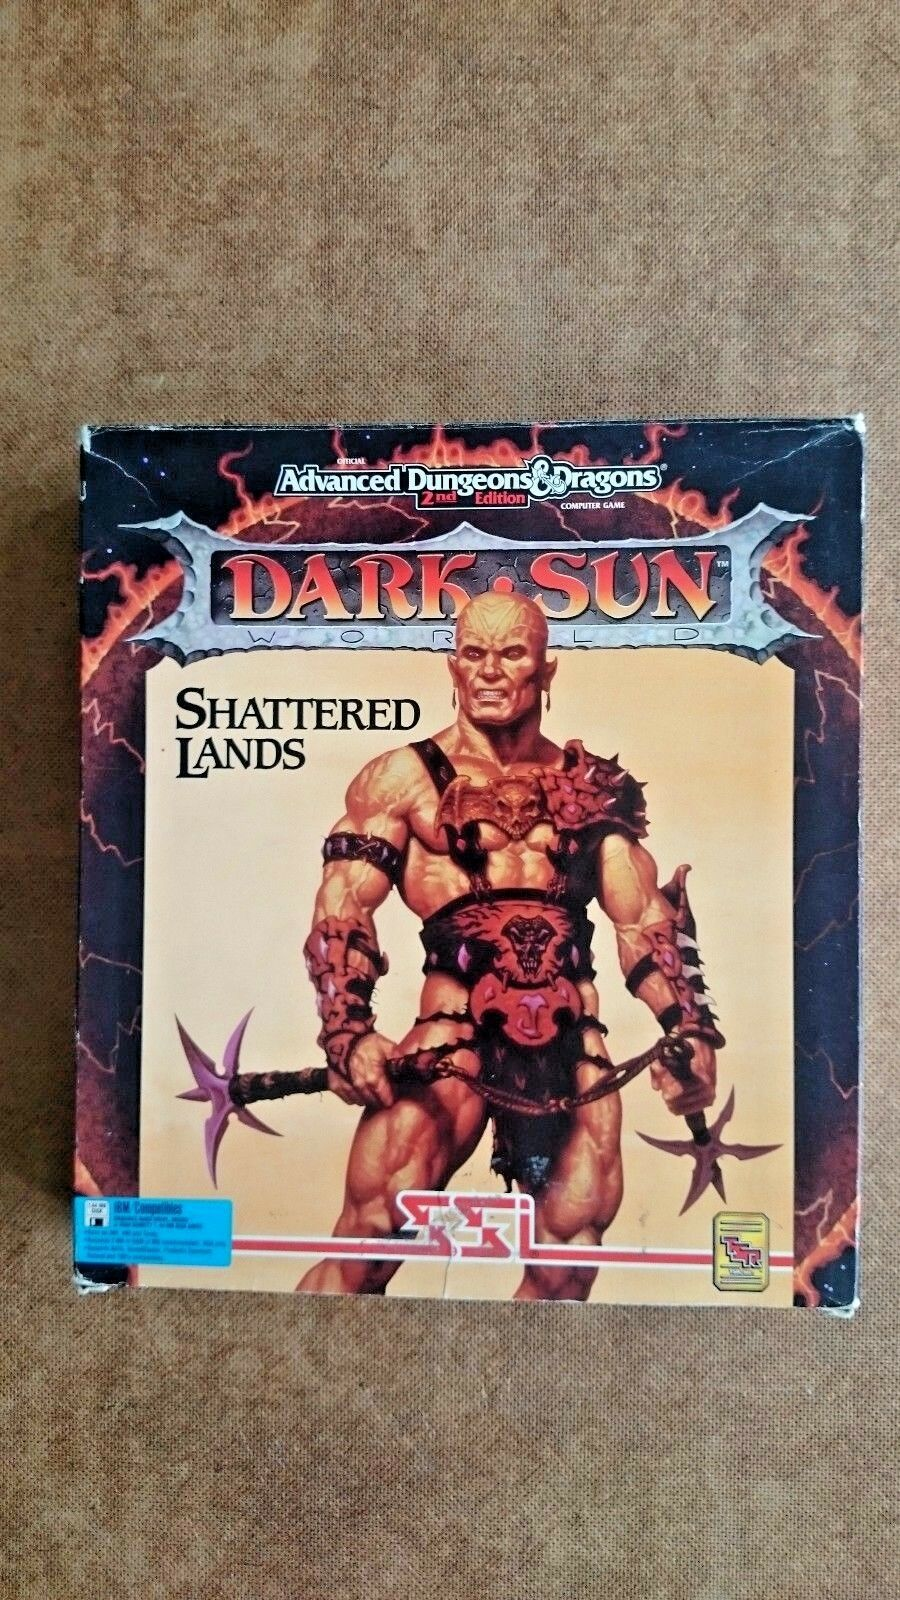 Dark Sun Shattered Lands  (PC Windows 1993) - Big Box Edition